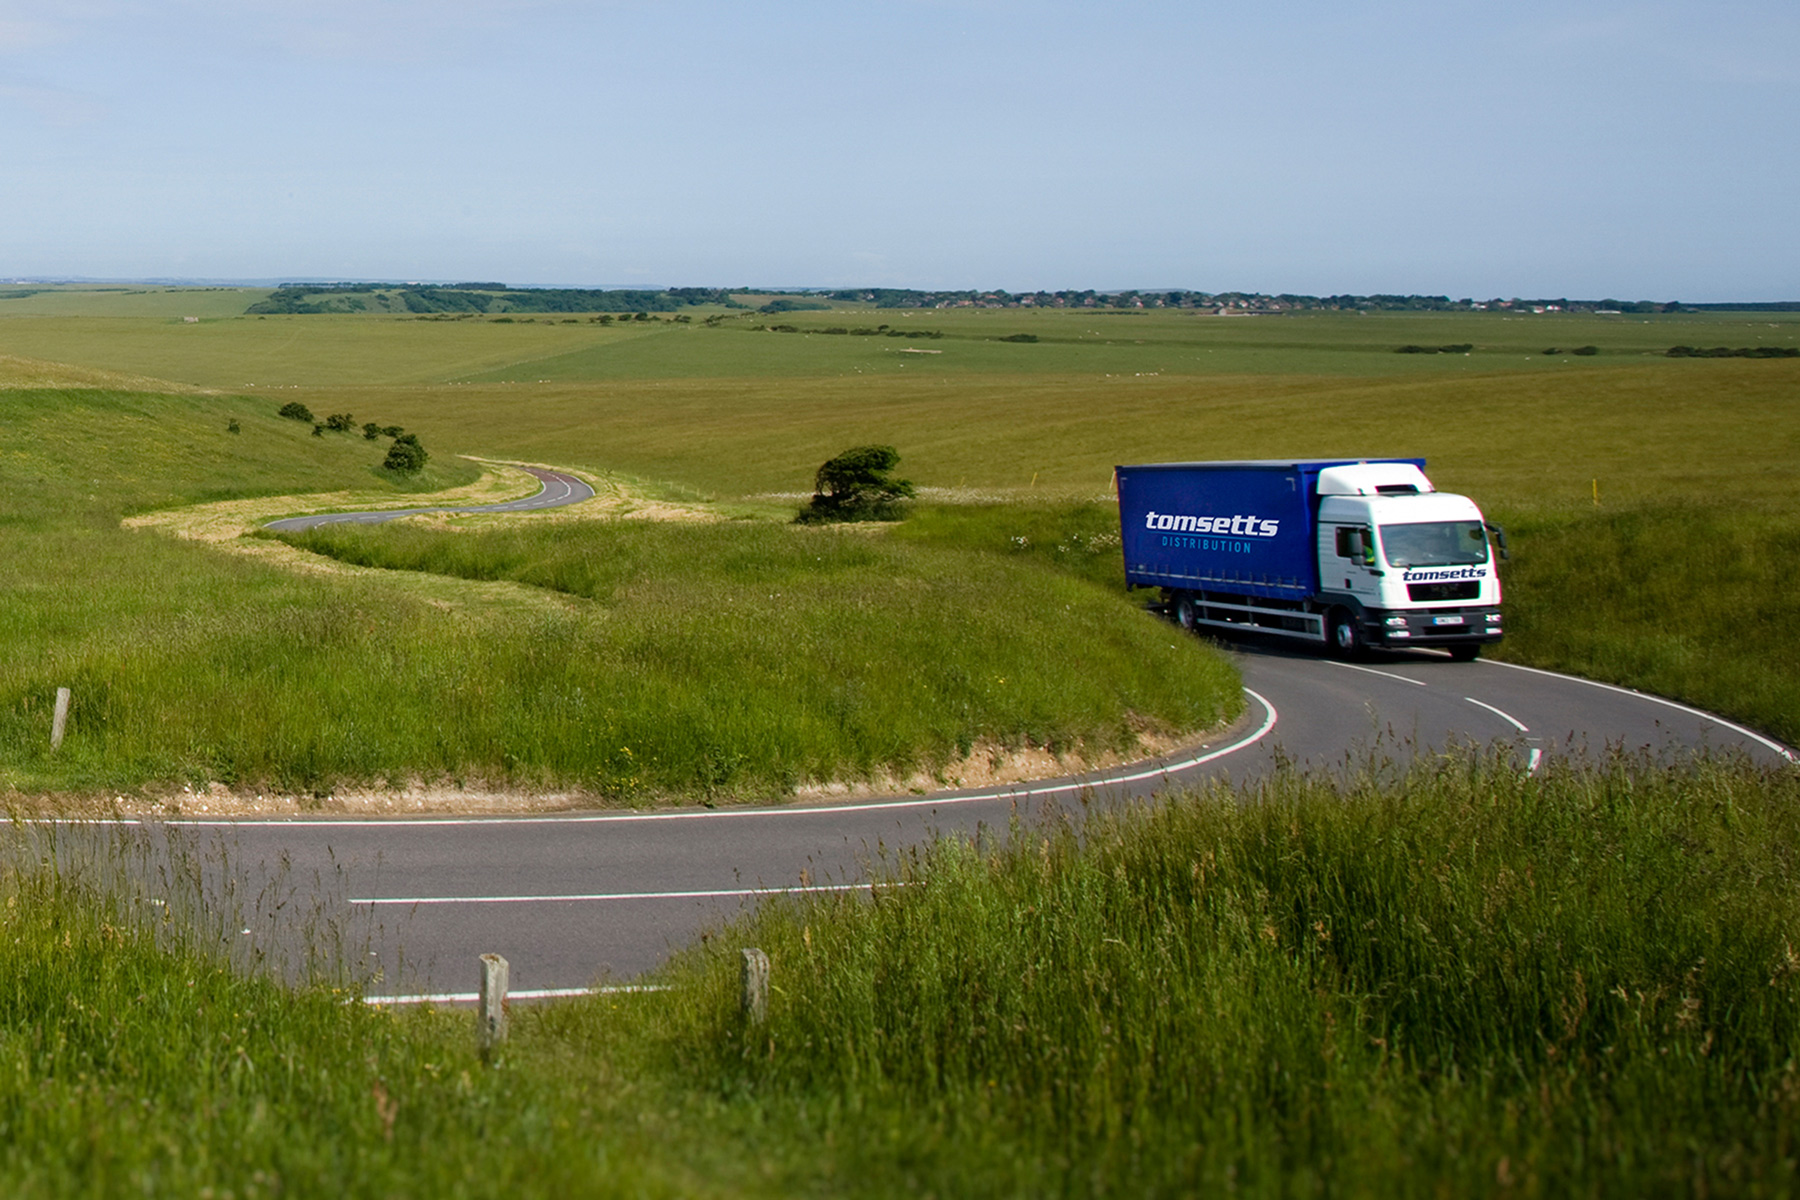 Environment friendly Tomsetts pallet distribution lorry drives through the countryside.